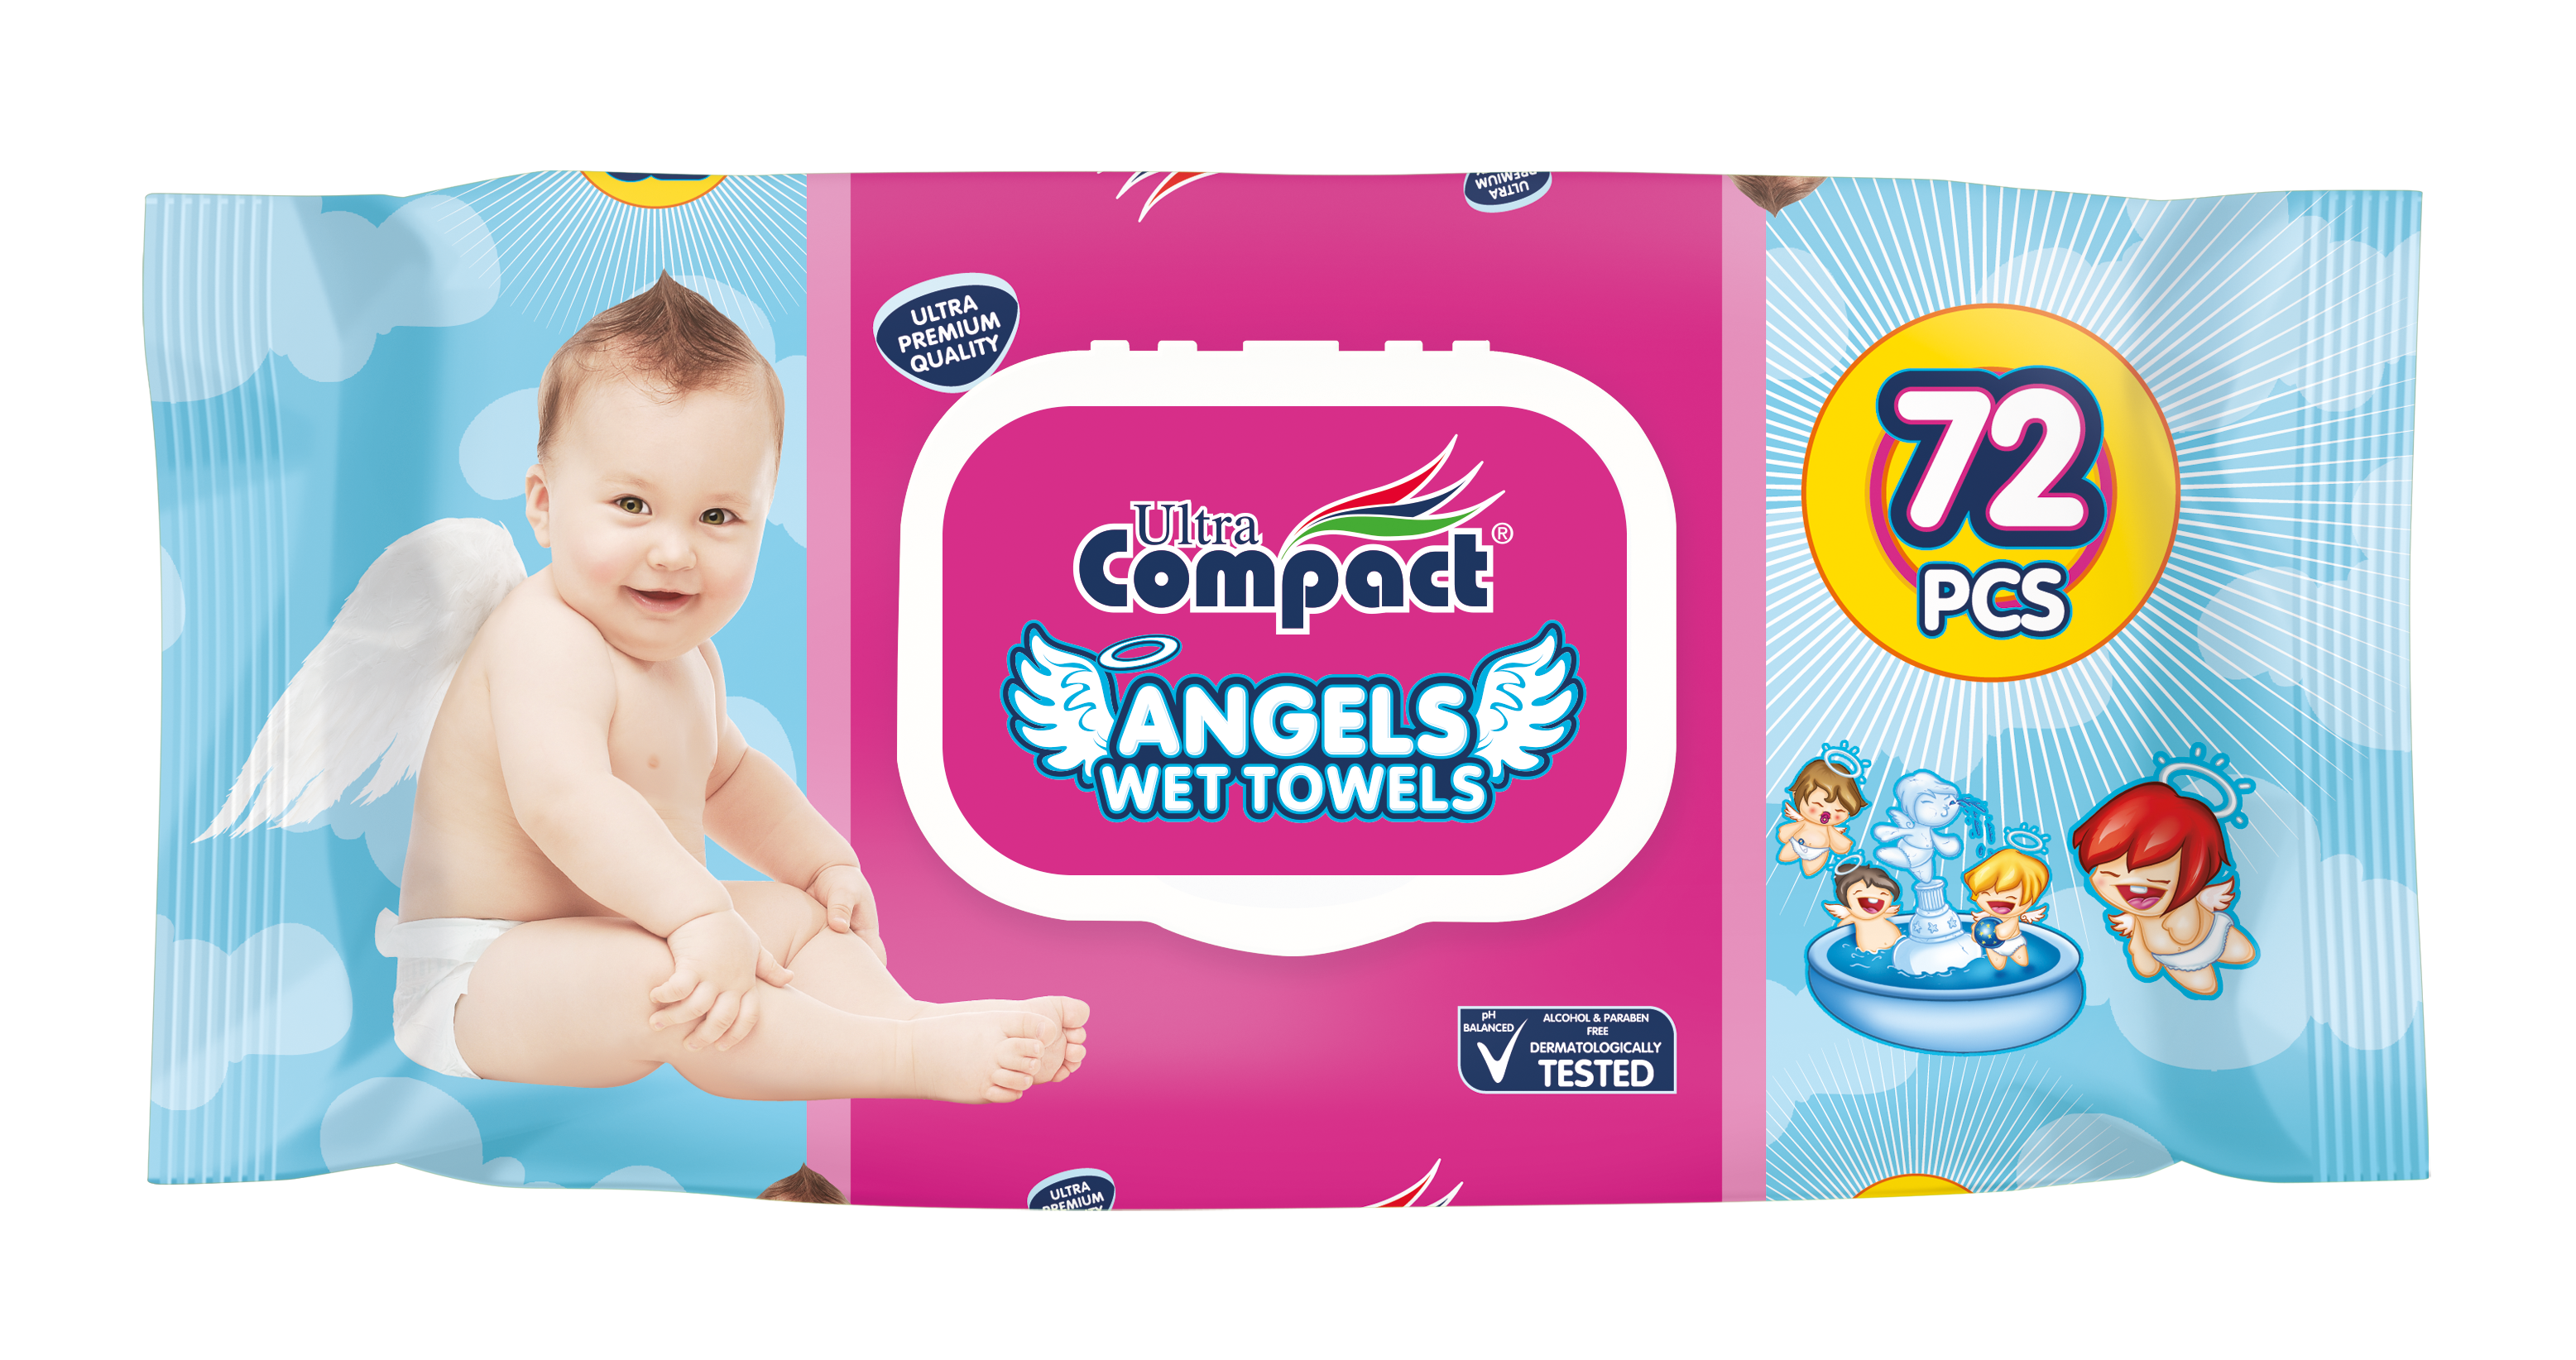 ANGELS WET TOWELS 72 PCS